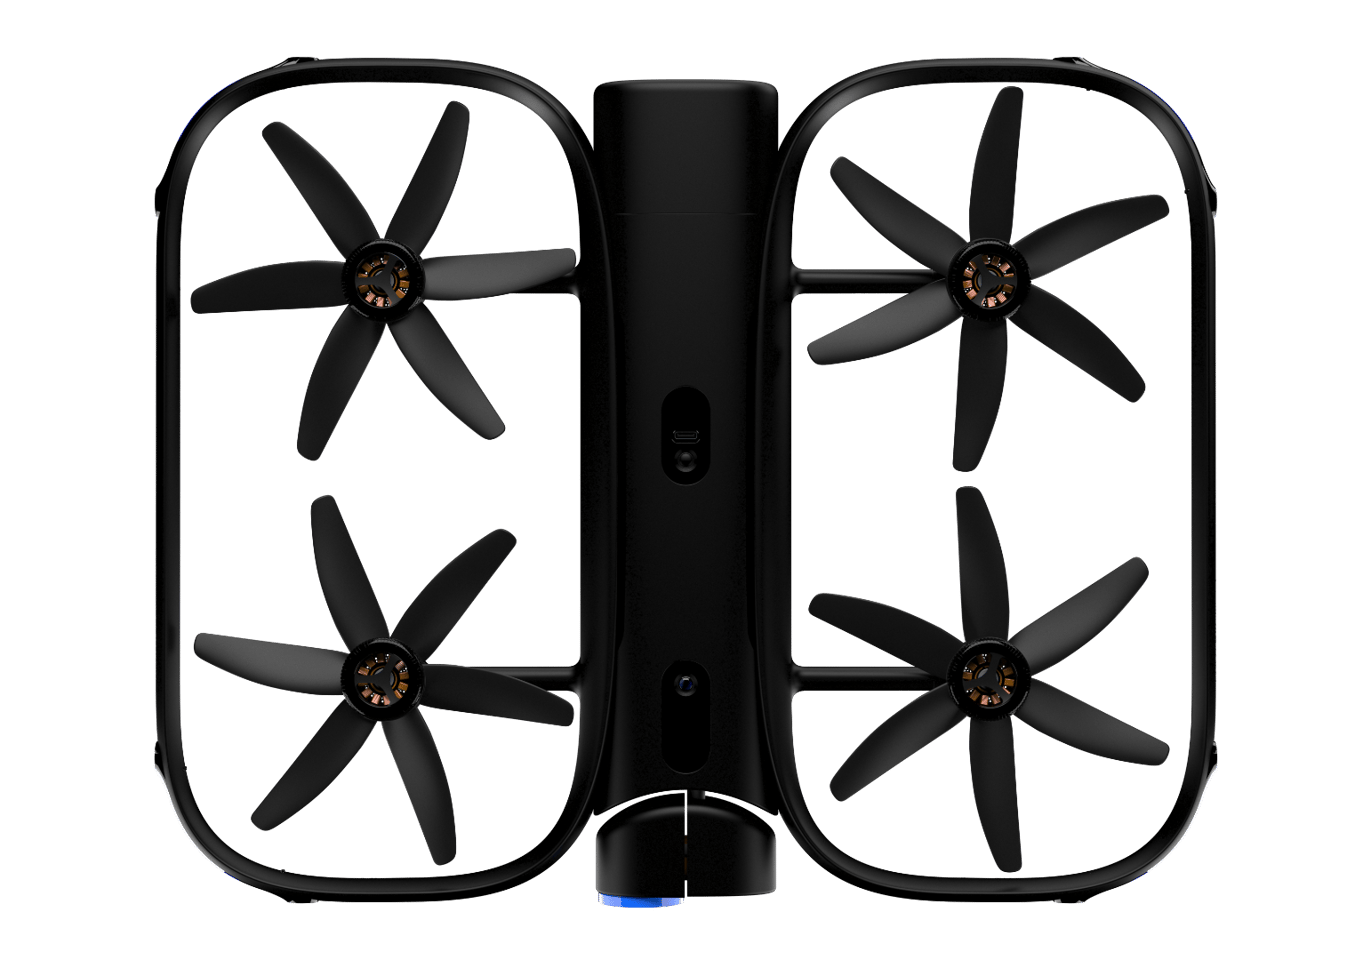 The Skydio R1 drone is available now in the US and Canada